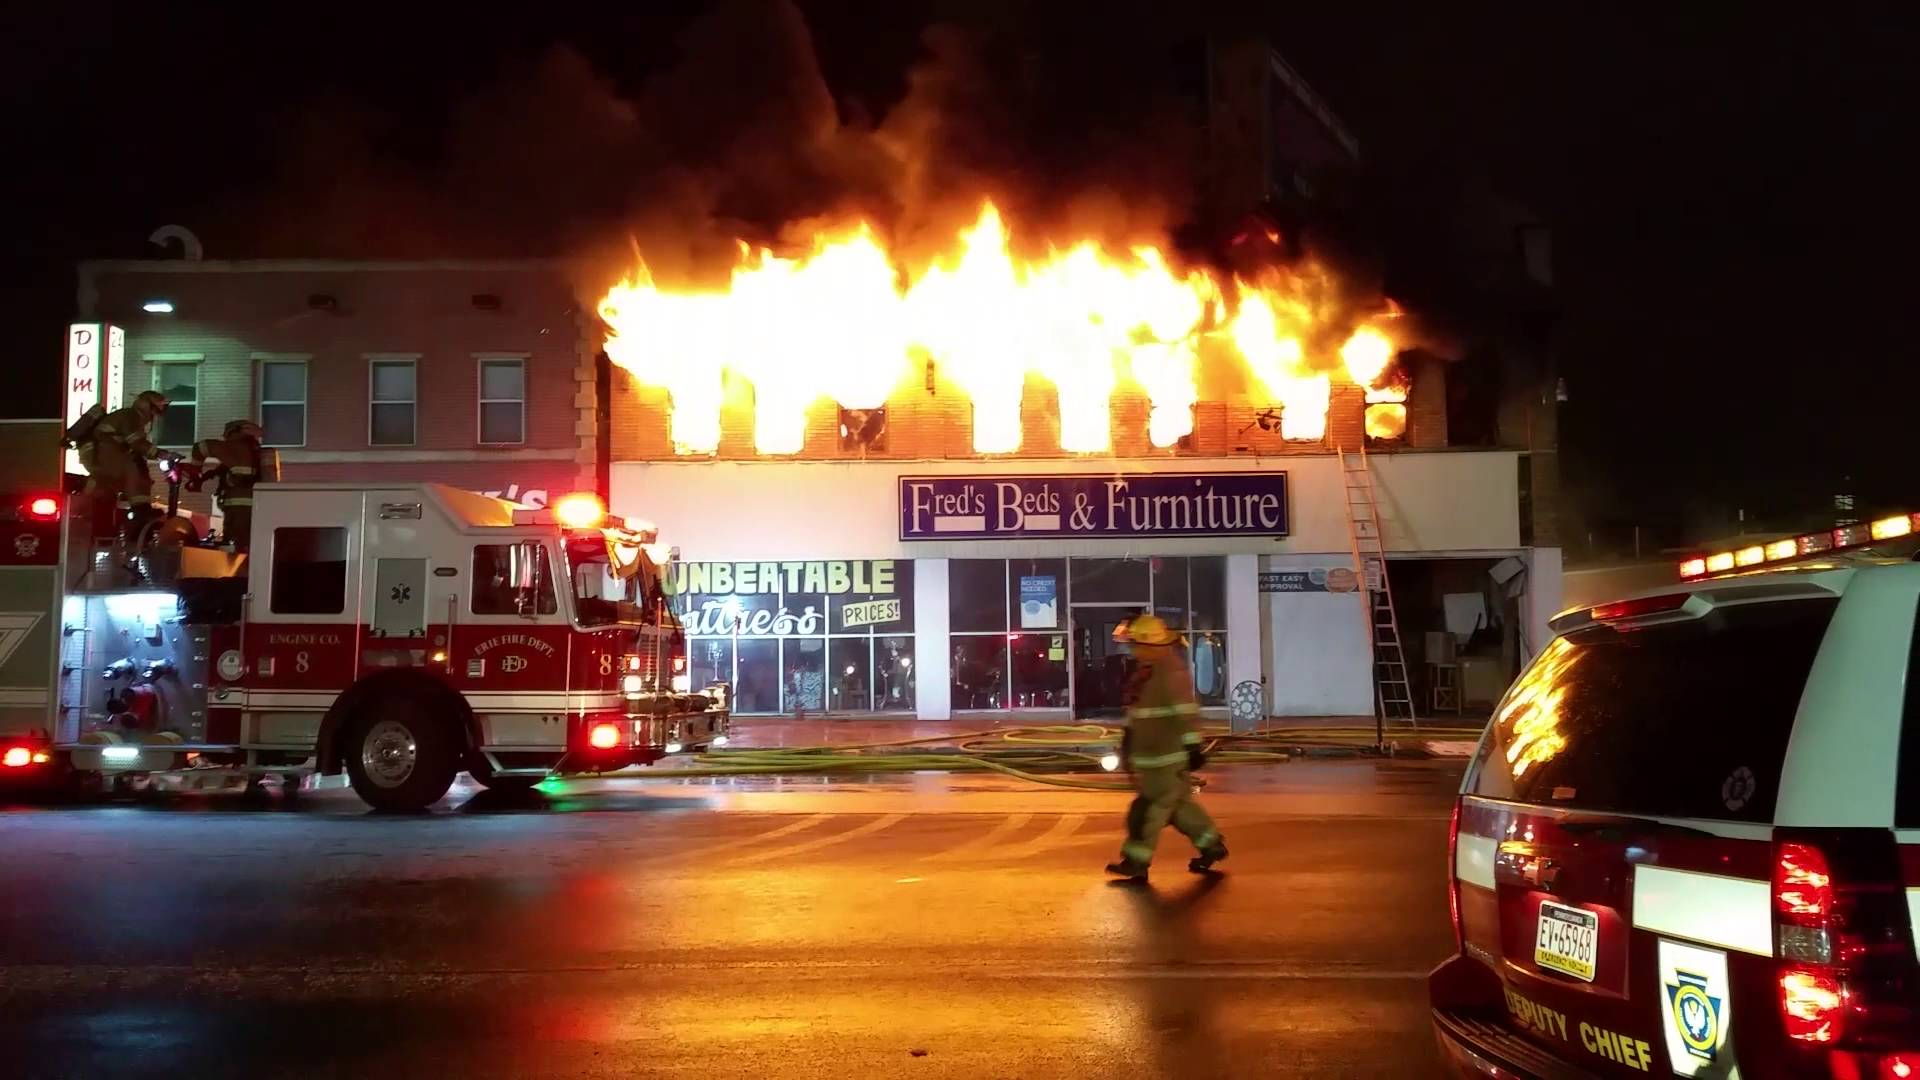 Raw Video From Furniture Store Fire In Erie PA Statter911